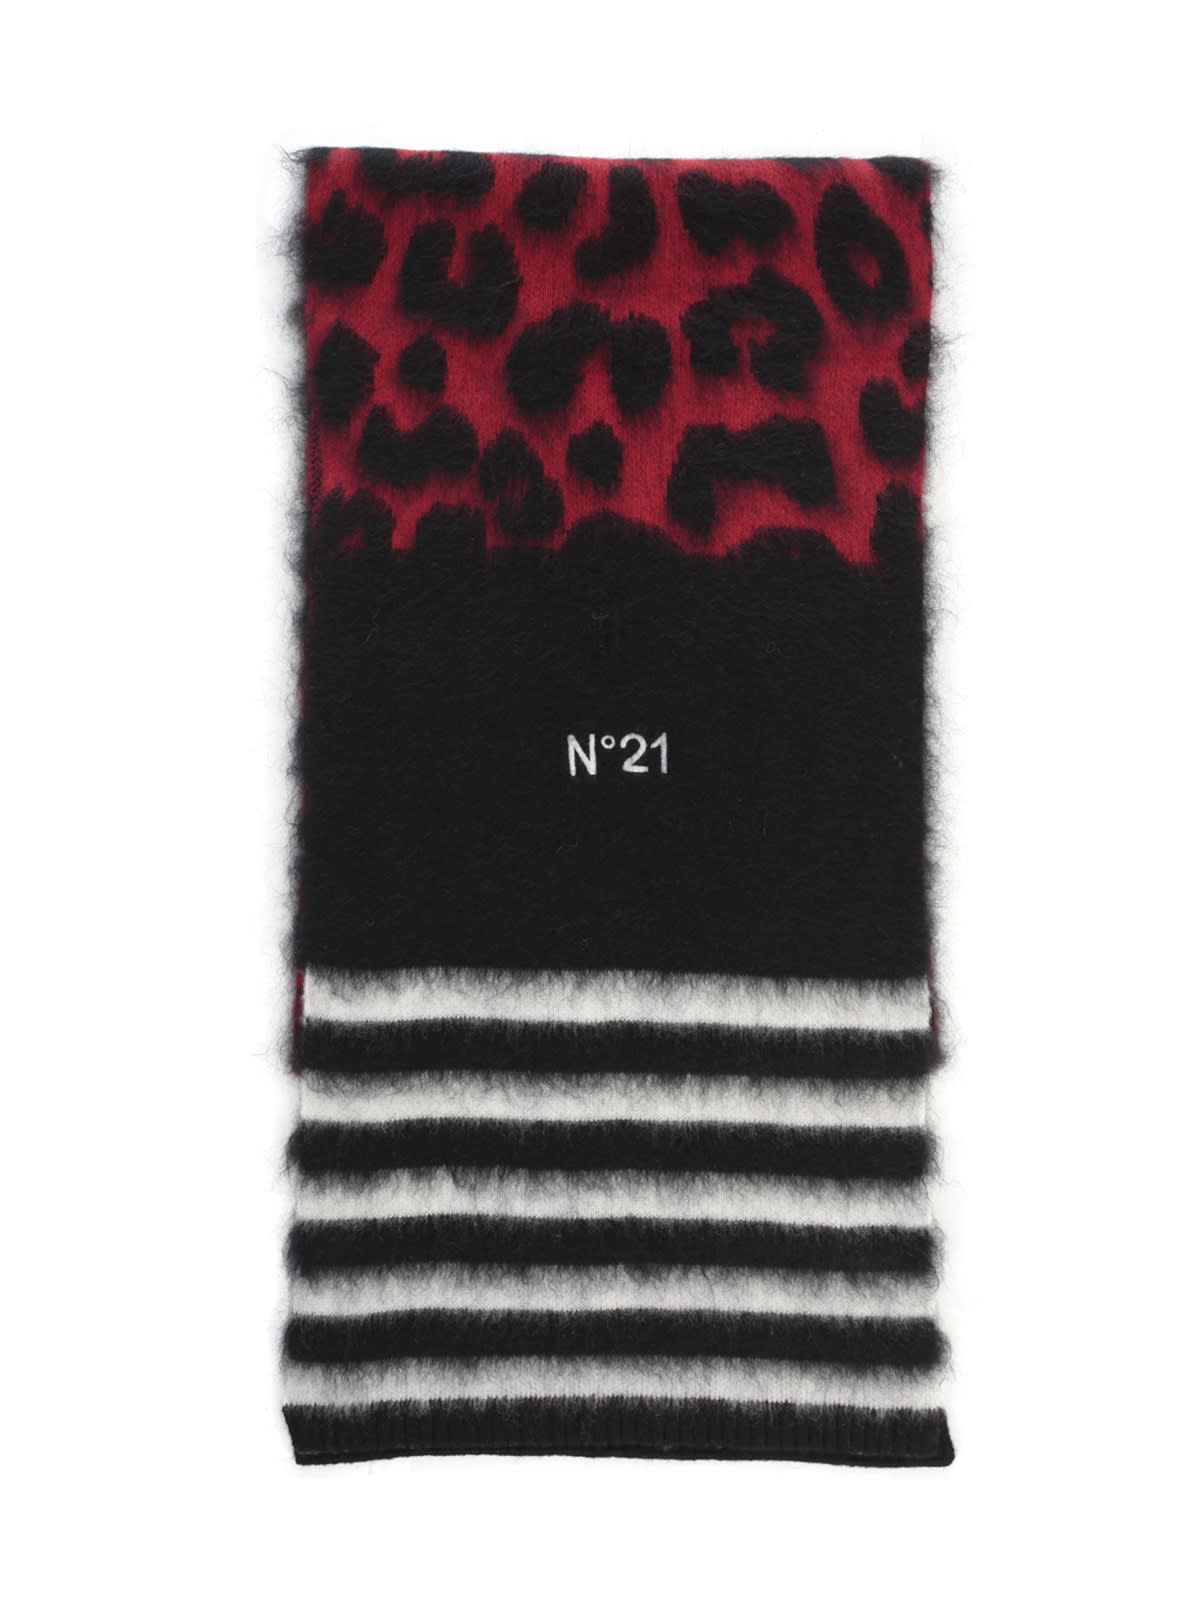 N°21 MIX & MATCH MATERIALS SCARF